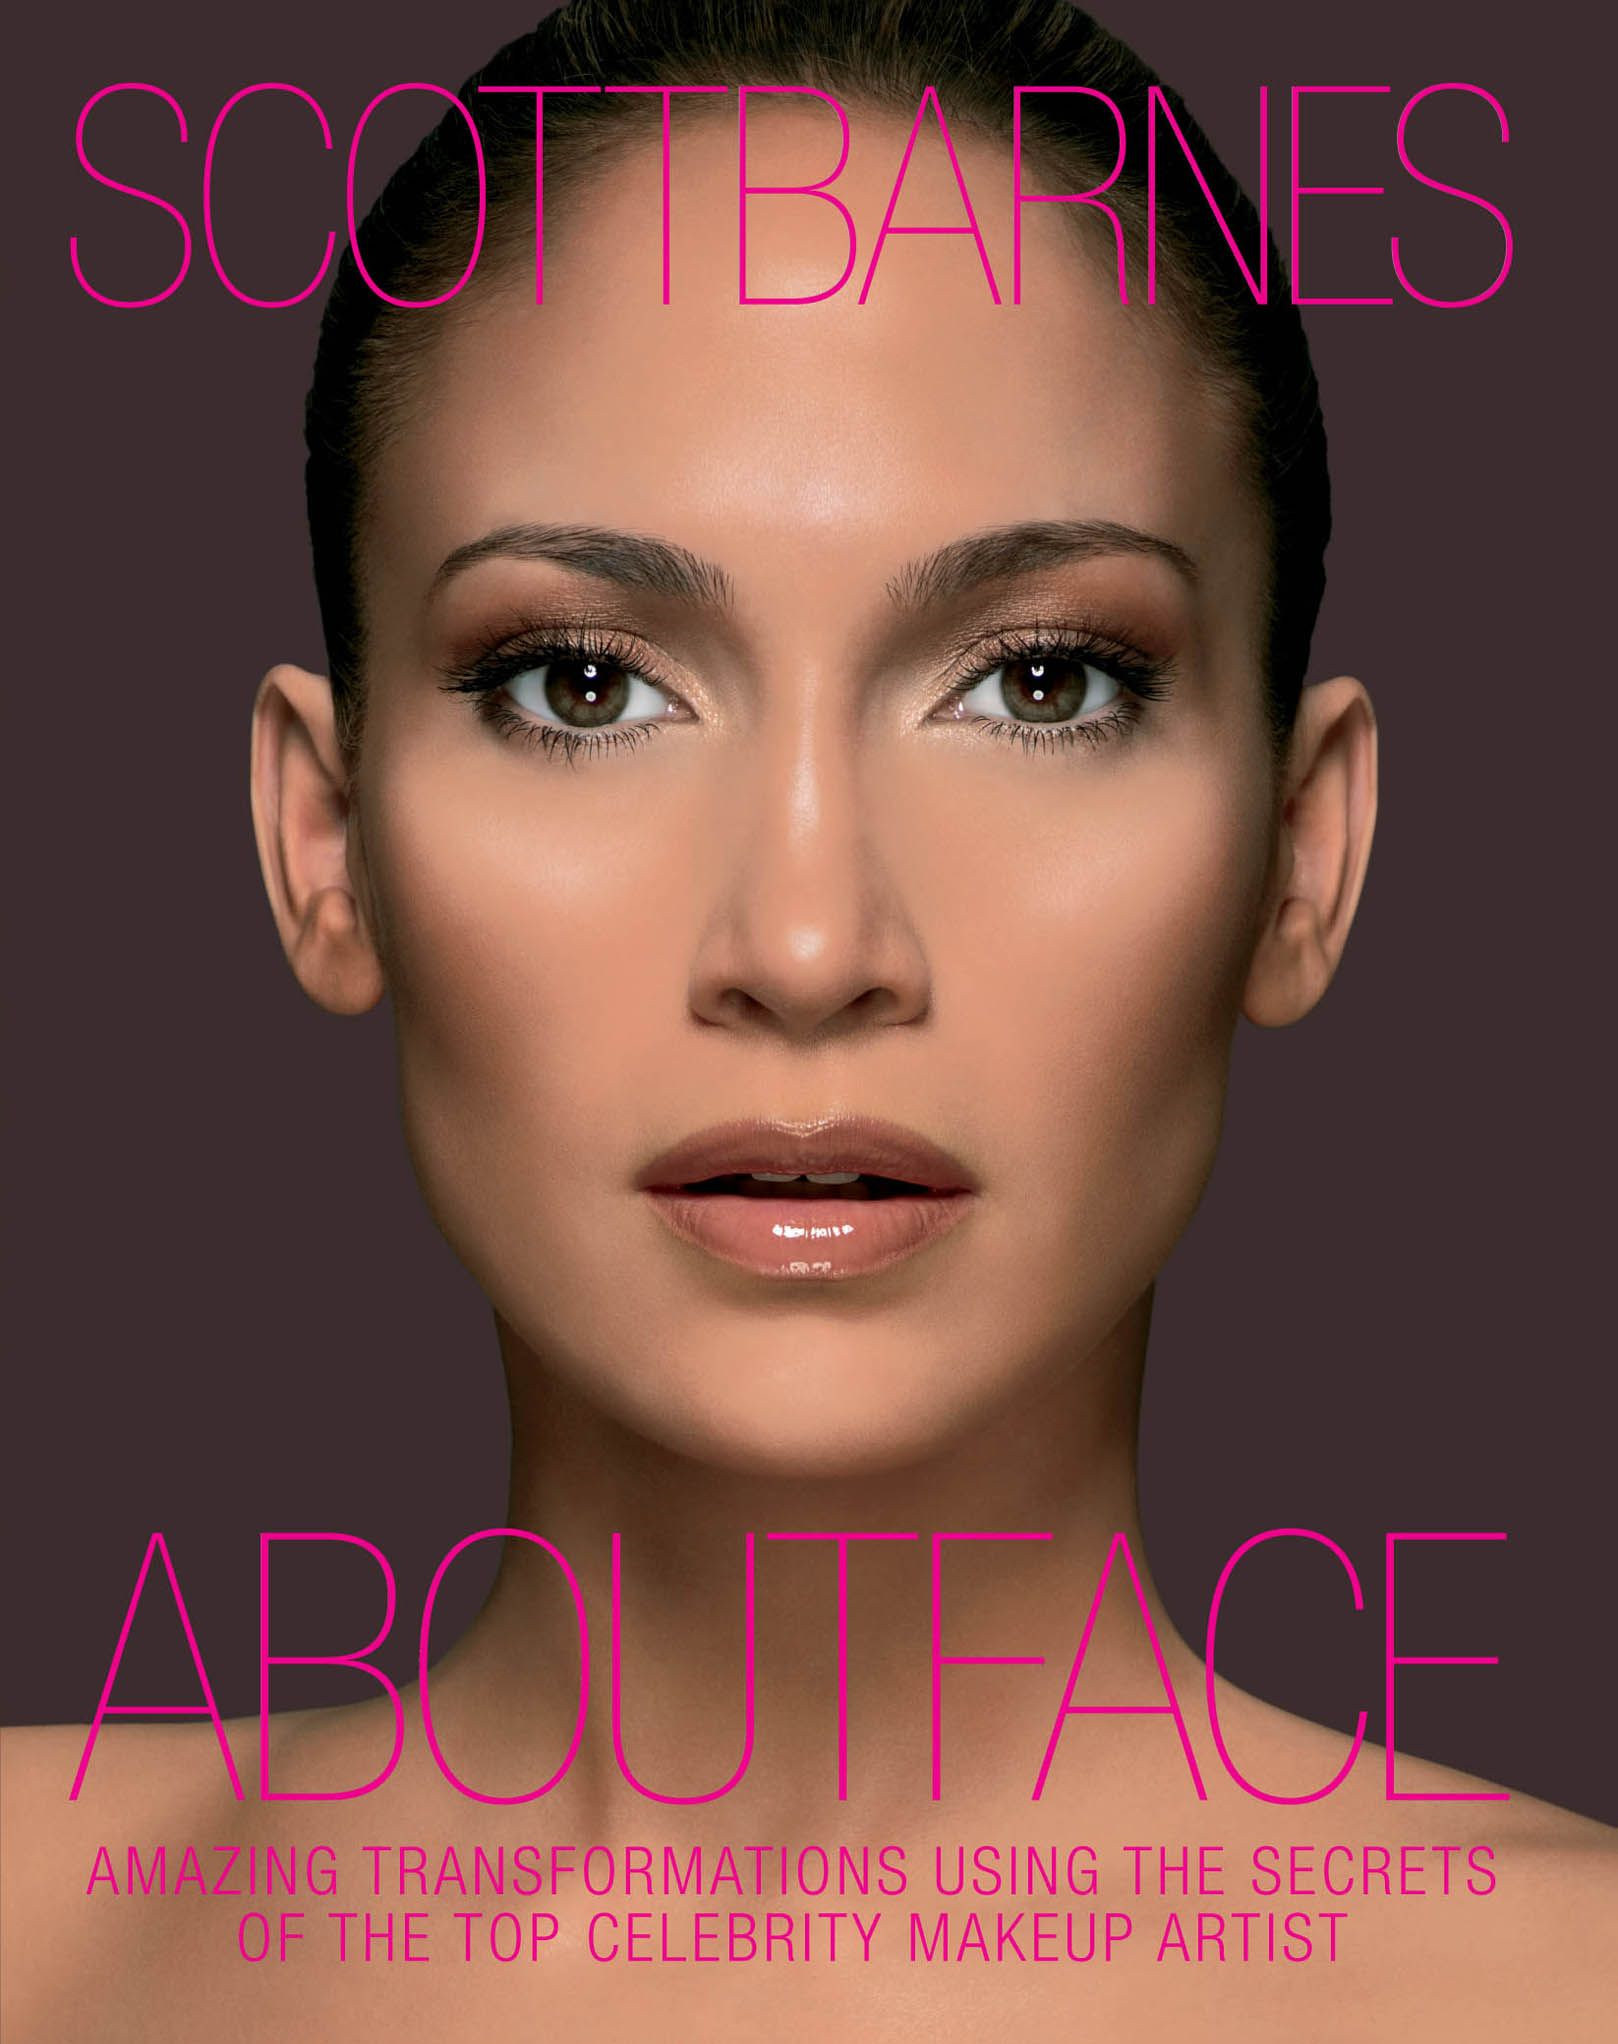 About Face: Amazing Transformations Using the Secrets of the Top Celebrity Makeup Artist By: Scott Barnes